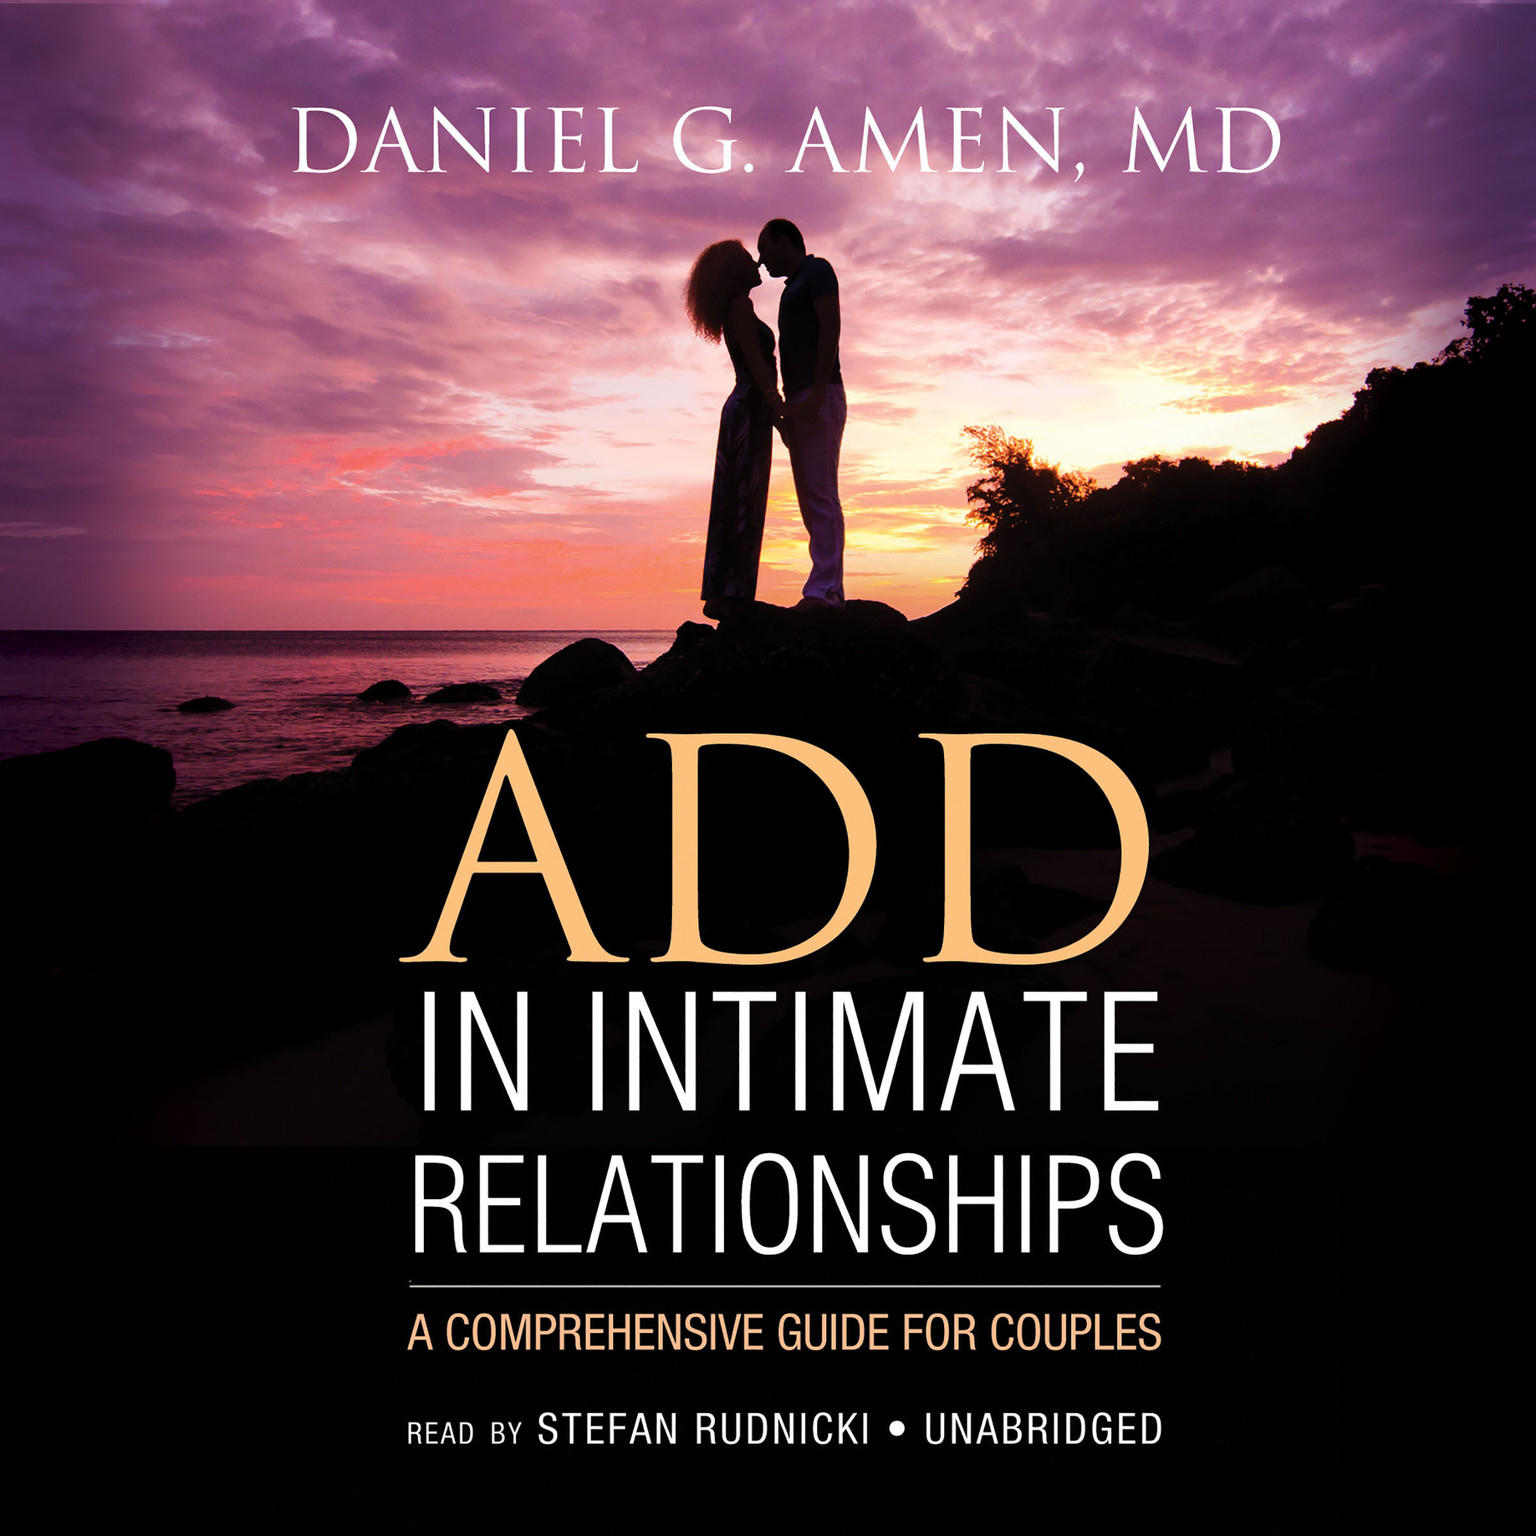 Printable ADD in Intimate Relationships: A Comprehensive Guide for Couples Audiobook Cover Art